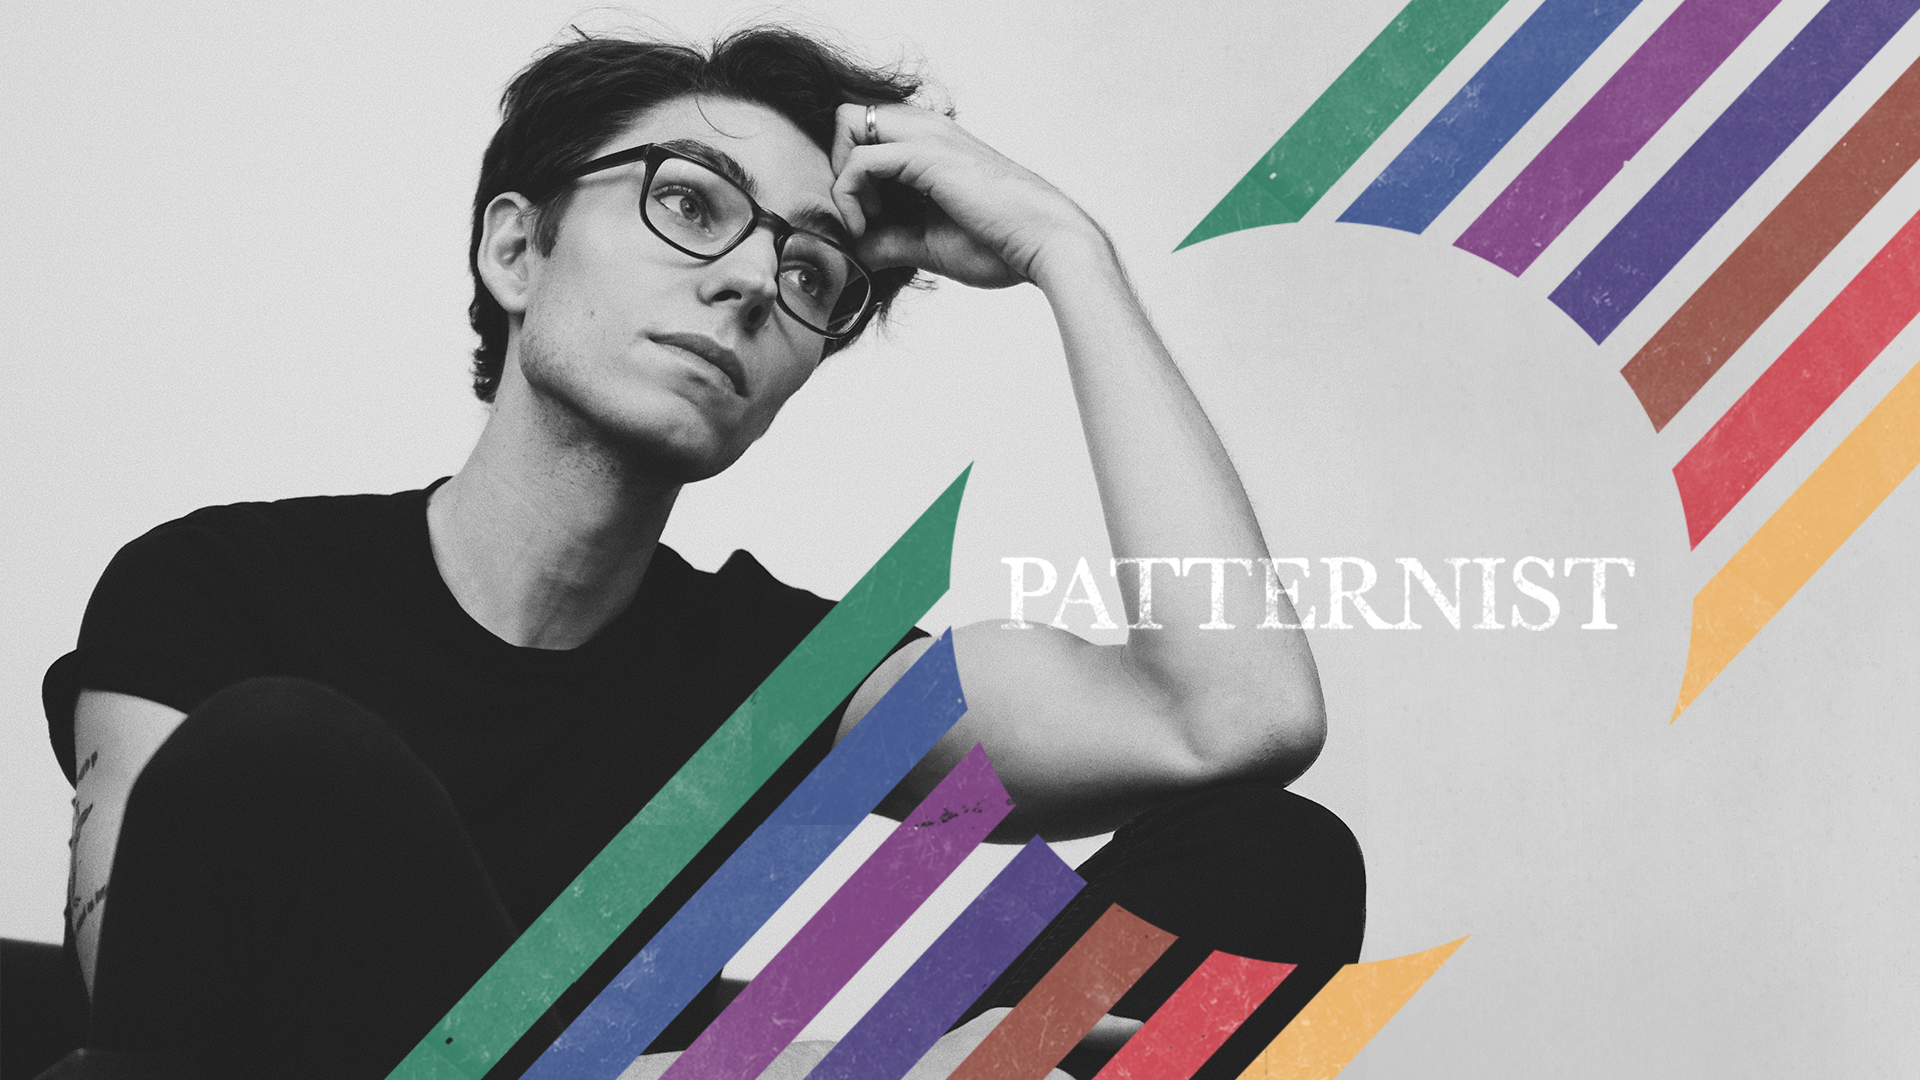 Patternist Graphic.png